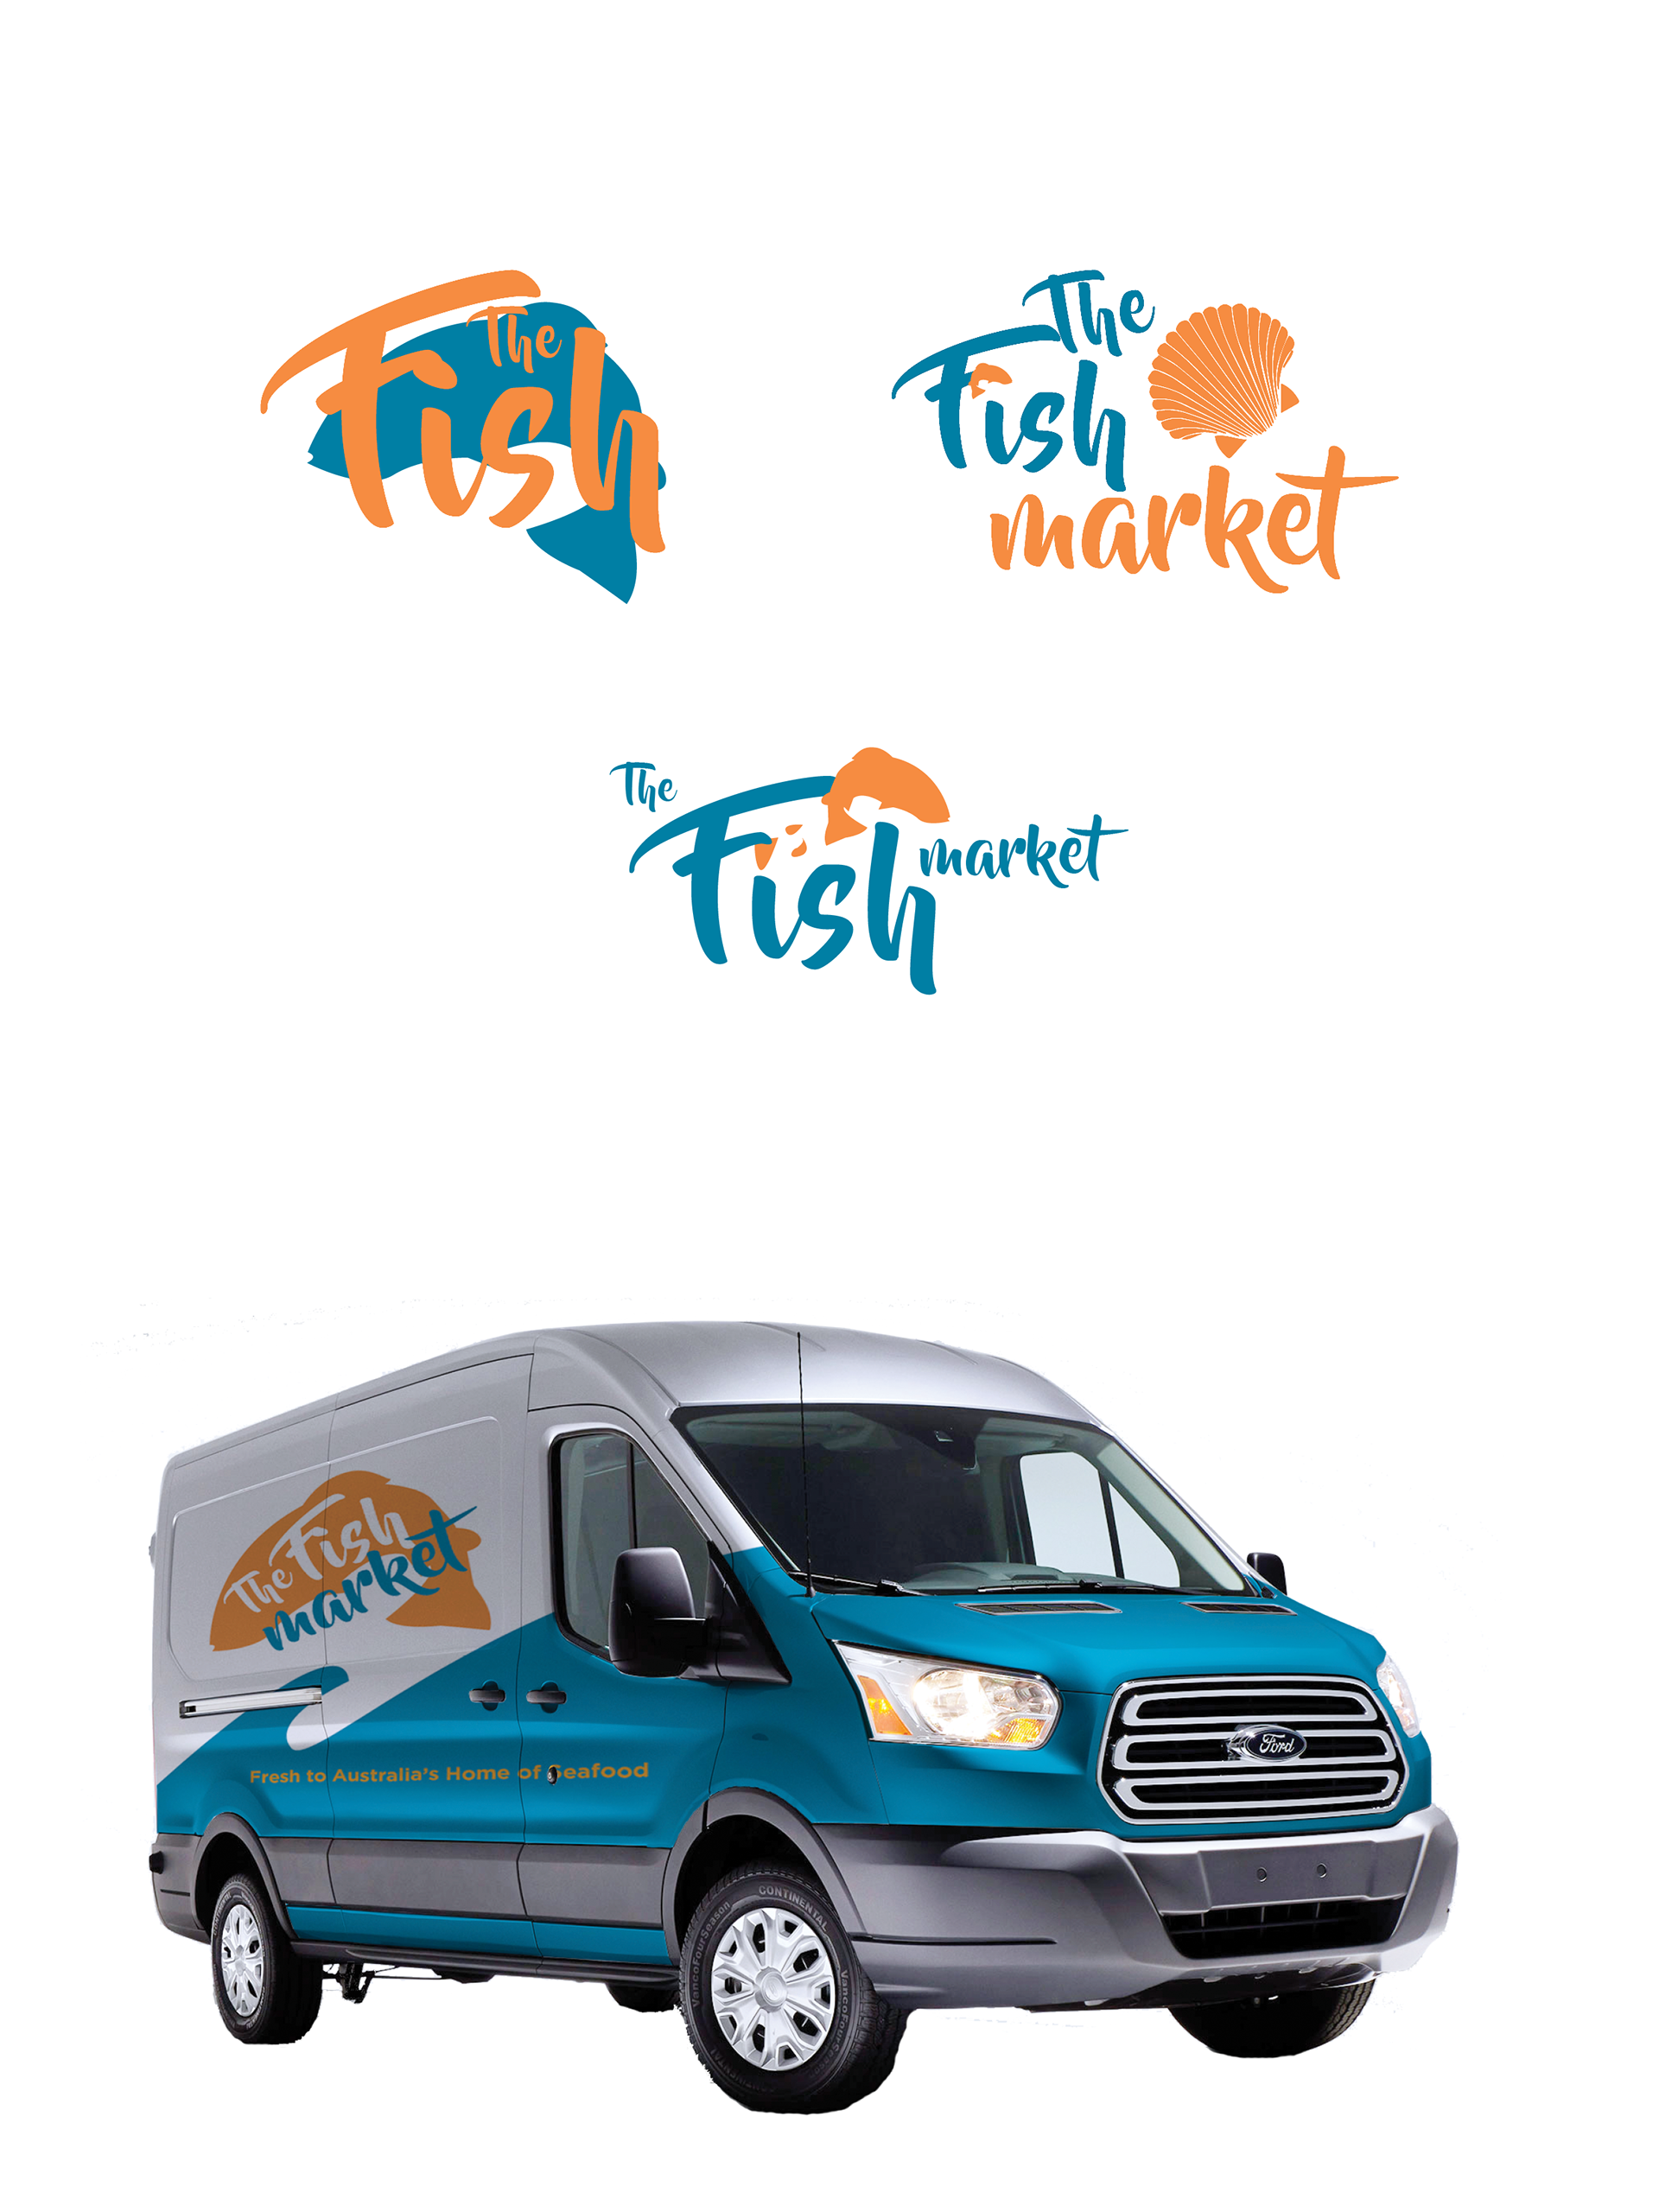 Felicia Widjaja The Fish Market Newlook Playful This Project Was Done In A Group Aim Of To Re Brand And Create New Look Feel For Sydney